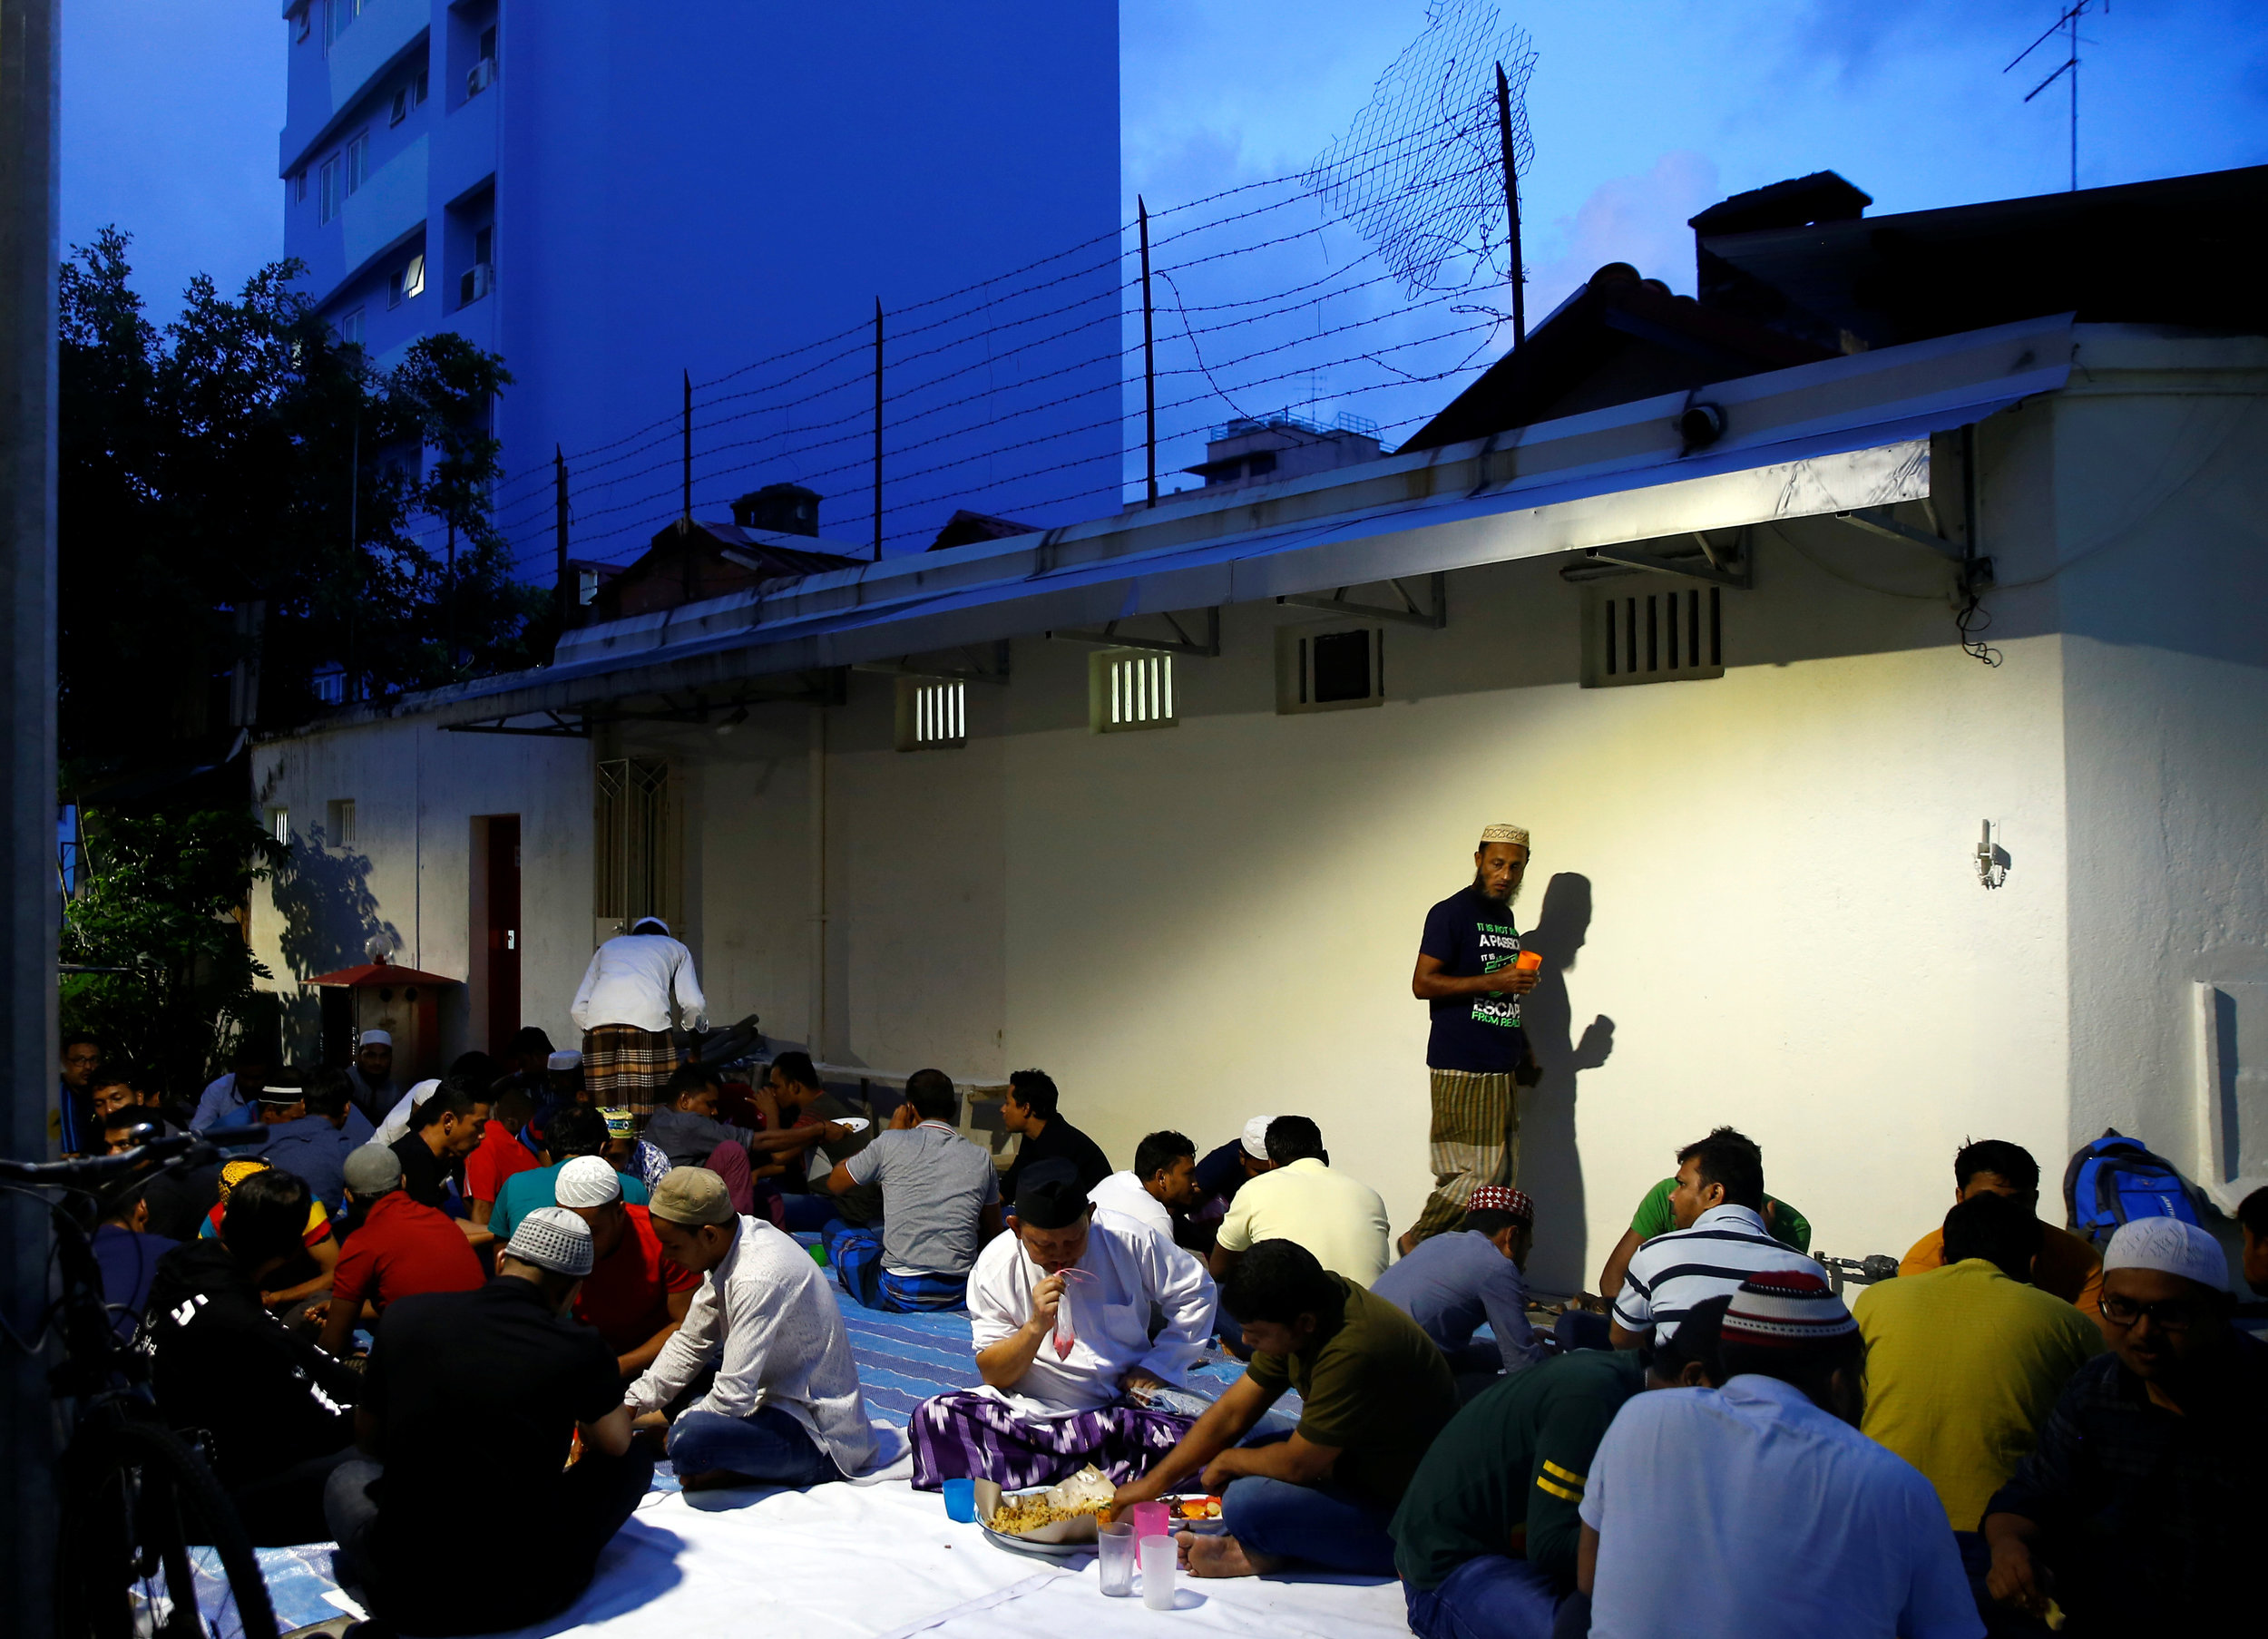 Bangladeshi migrant workers break fast during the holy fasting month of Ramadan at the Haji Mohd Salleh Mosque in Singapore, May 26, 2019. REUTERS/Feline Lim